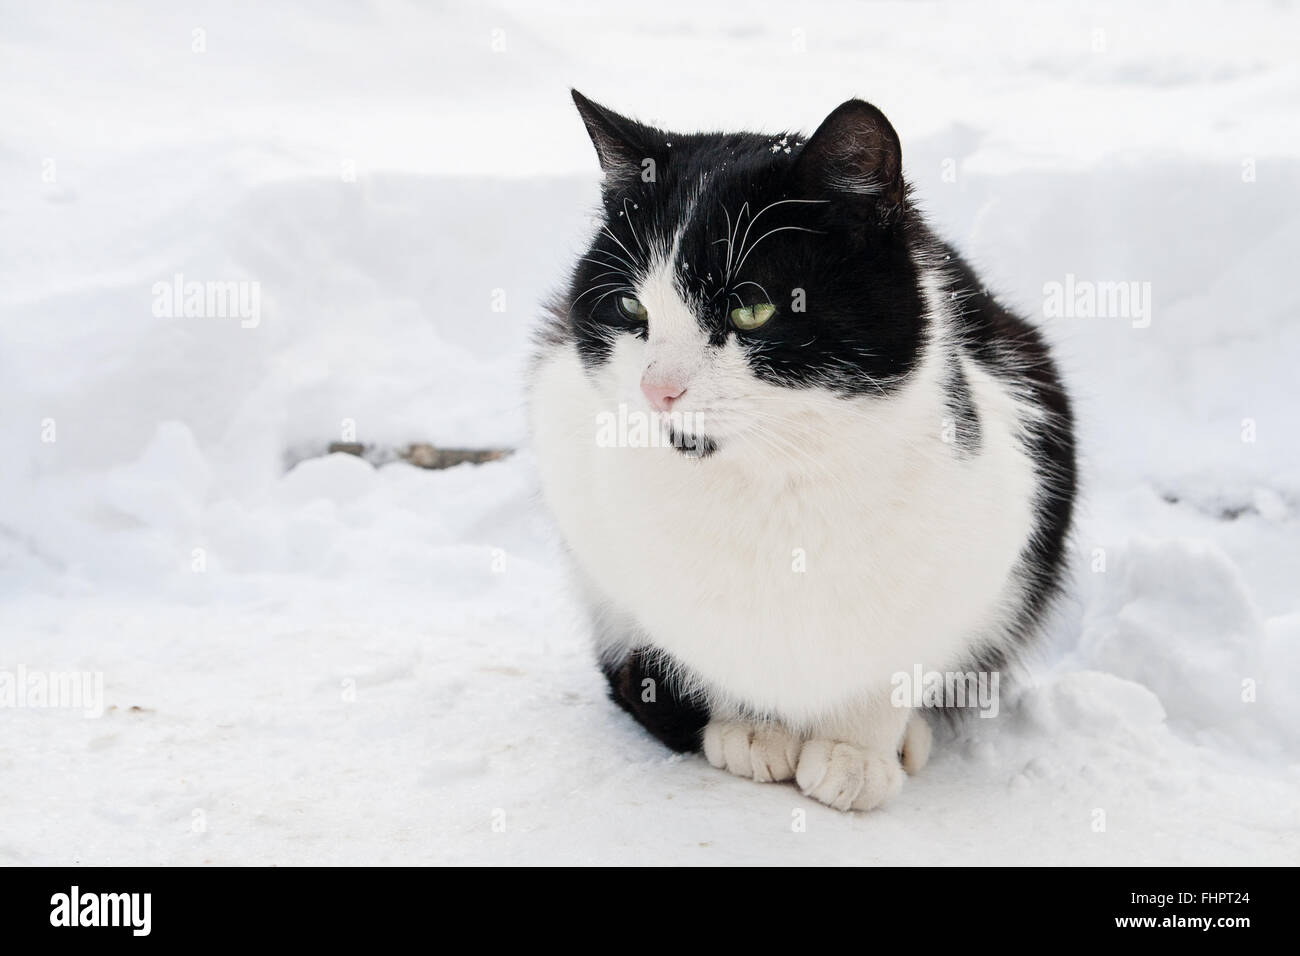 Cat In Snow Black And White Cute Staying Calm In The White Snow Stock Photo Alamy